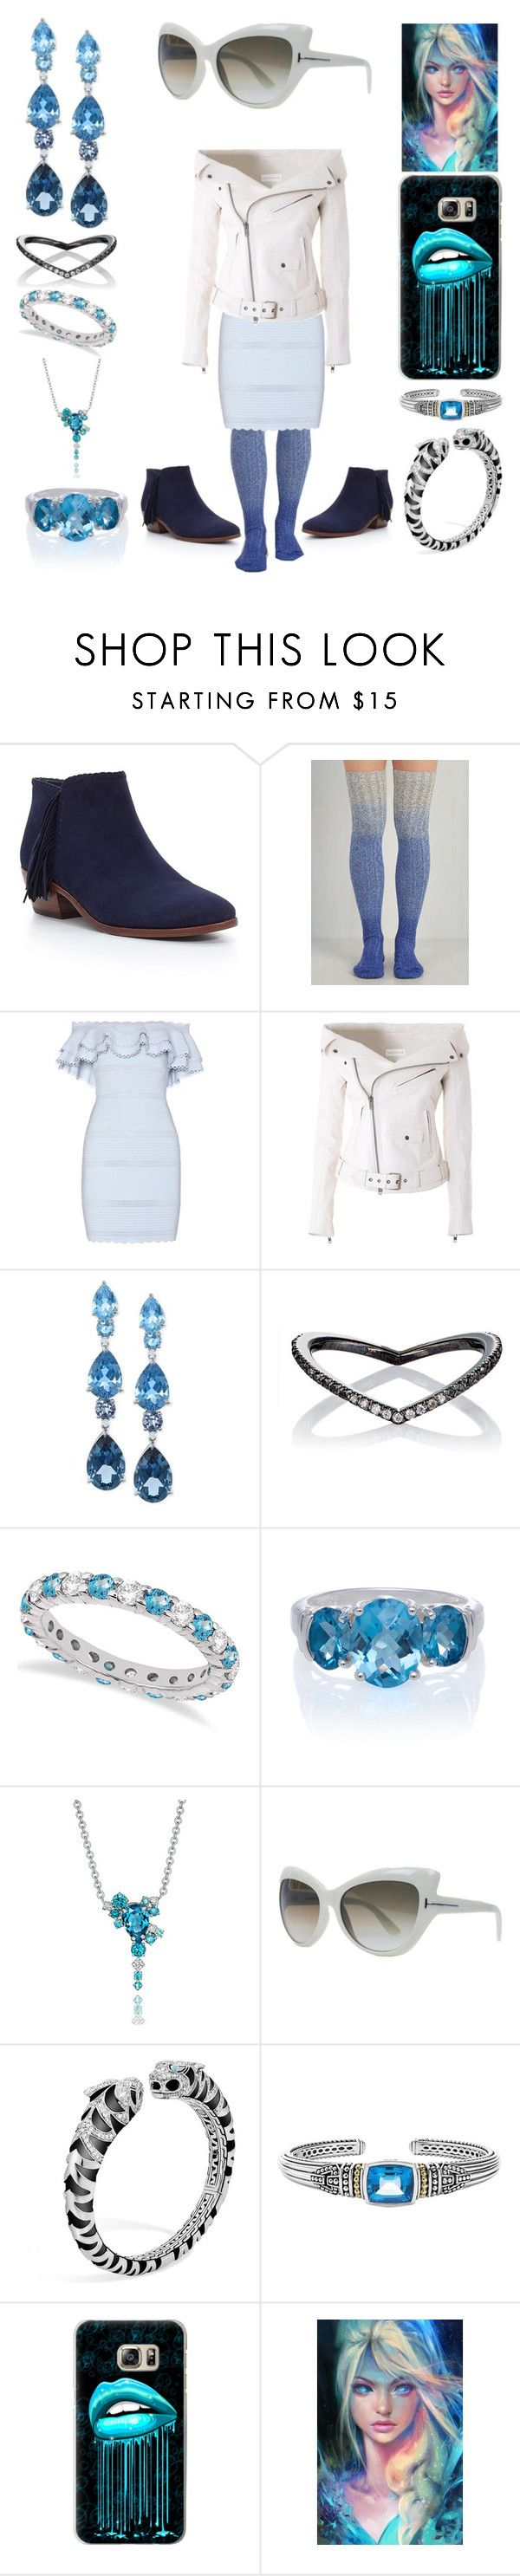 """""""Ice Queen"""" by creation-gallery on Polyvore featuring Sam Edelman, Alexander McQueen, Faith Connexion, LALI Jewels, Eva Fehren, Allurez, Lab, Tom Ford, John Hardy and Lagos"""